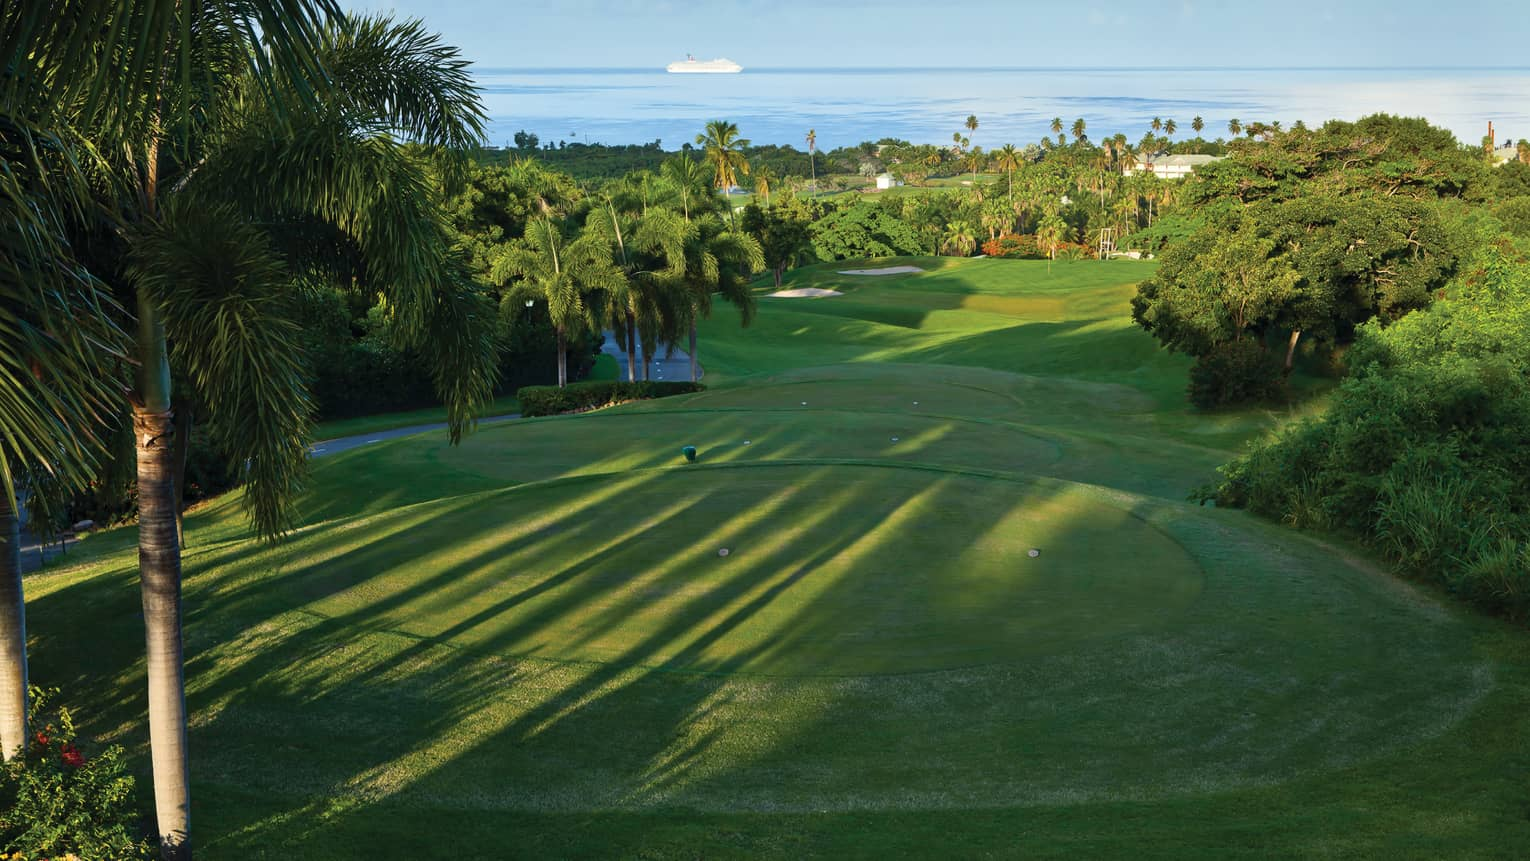 Looking down over golf course greens surrounded by tropical trees, palms